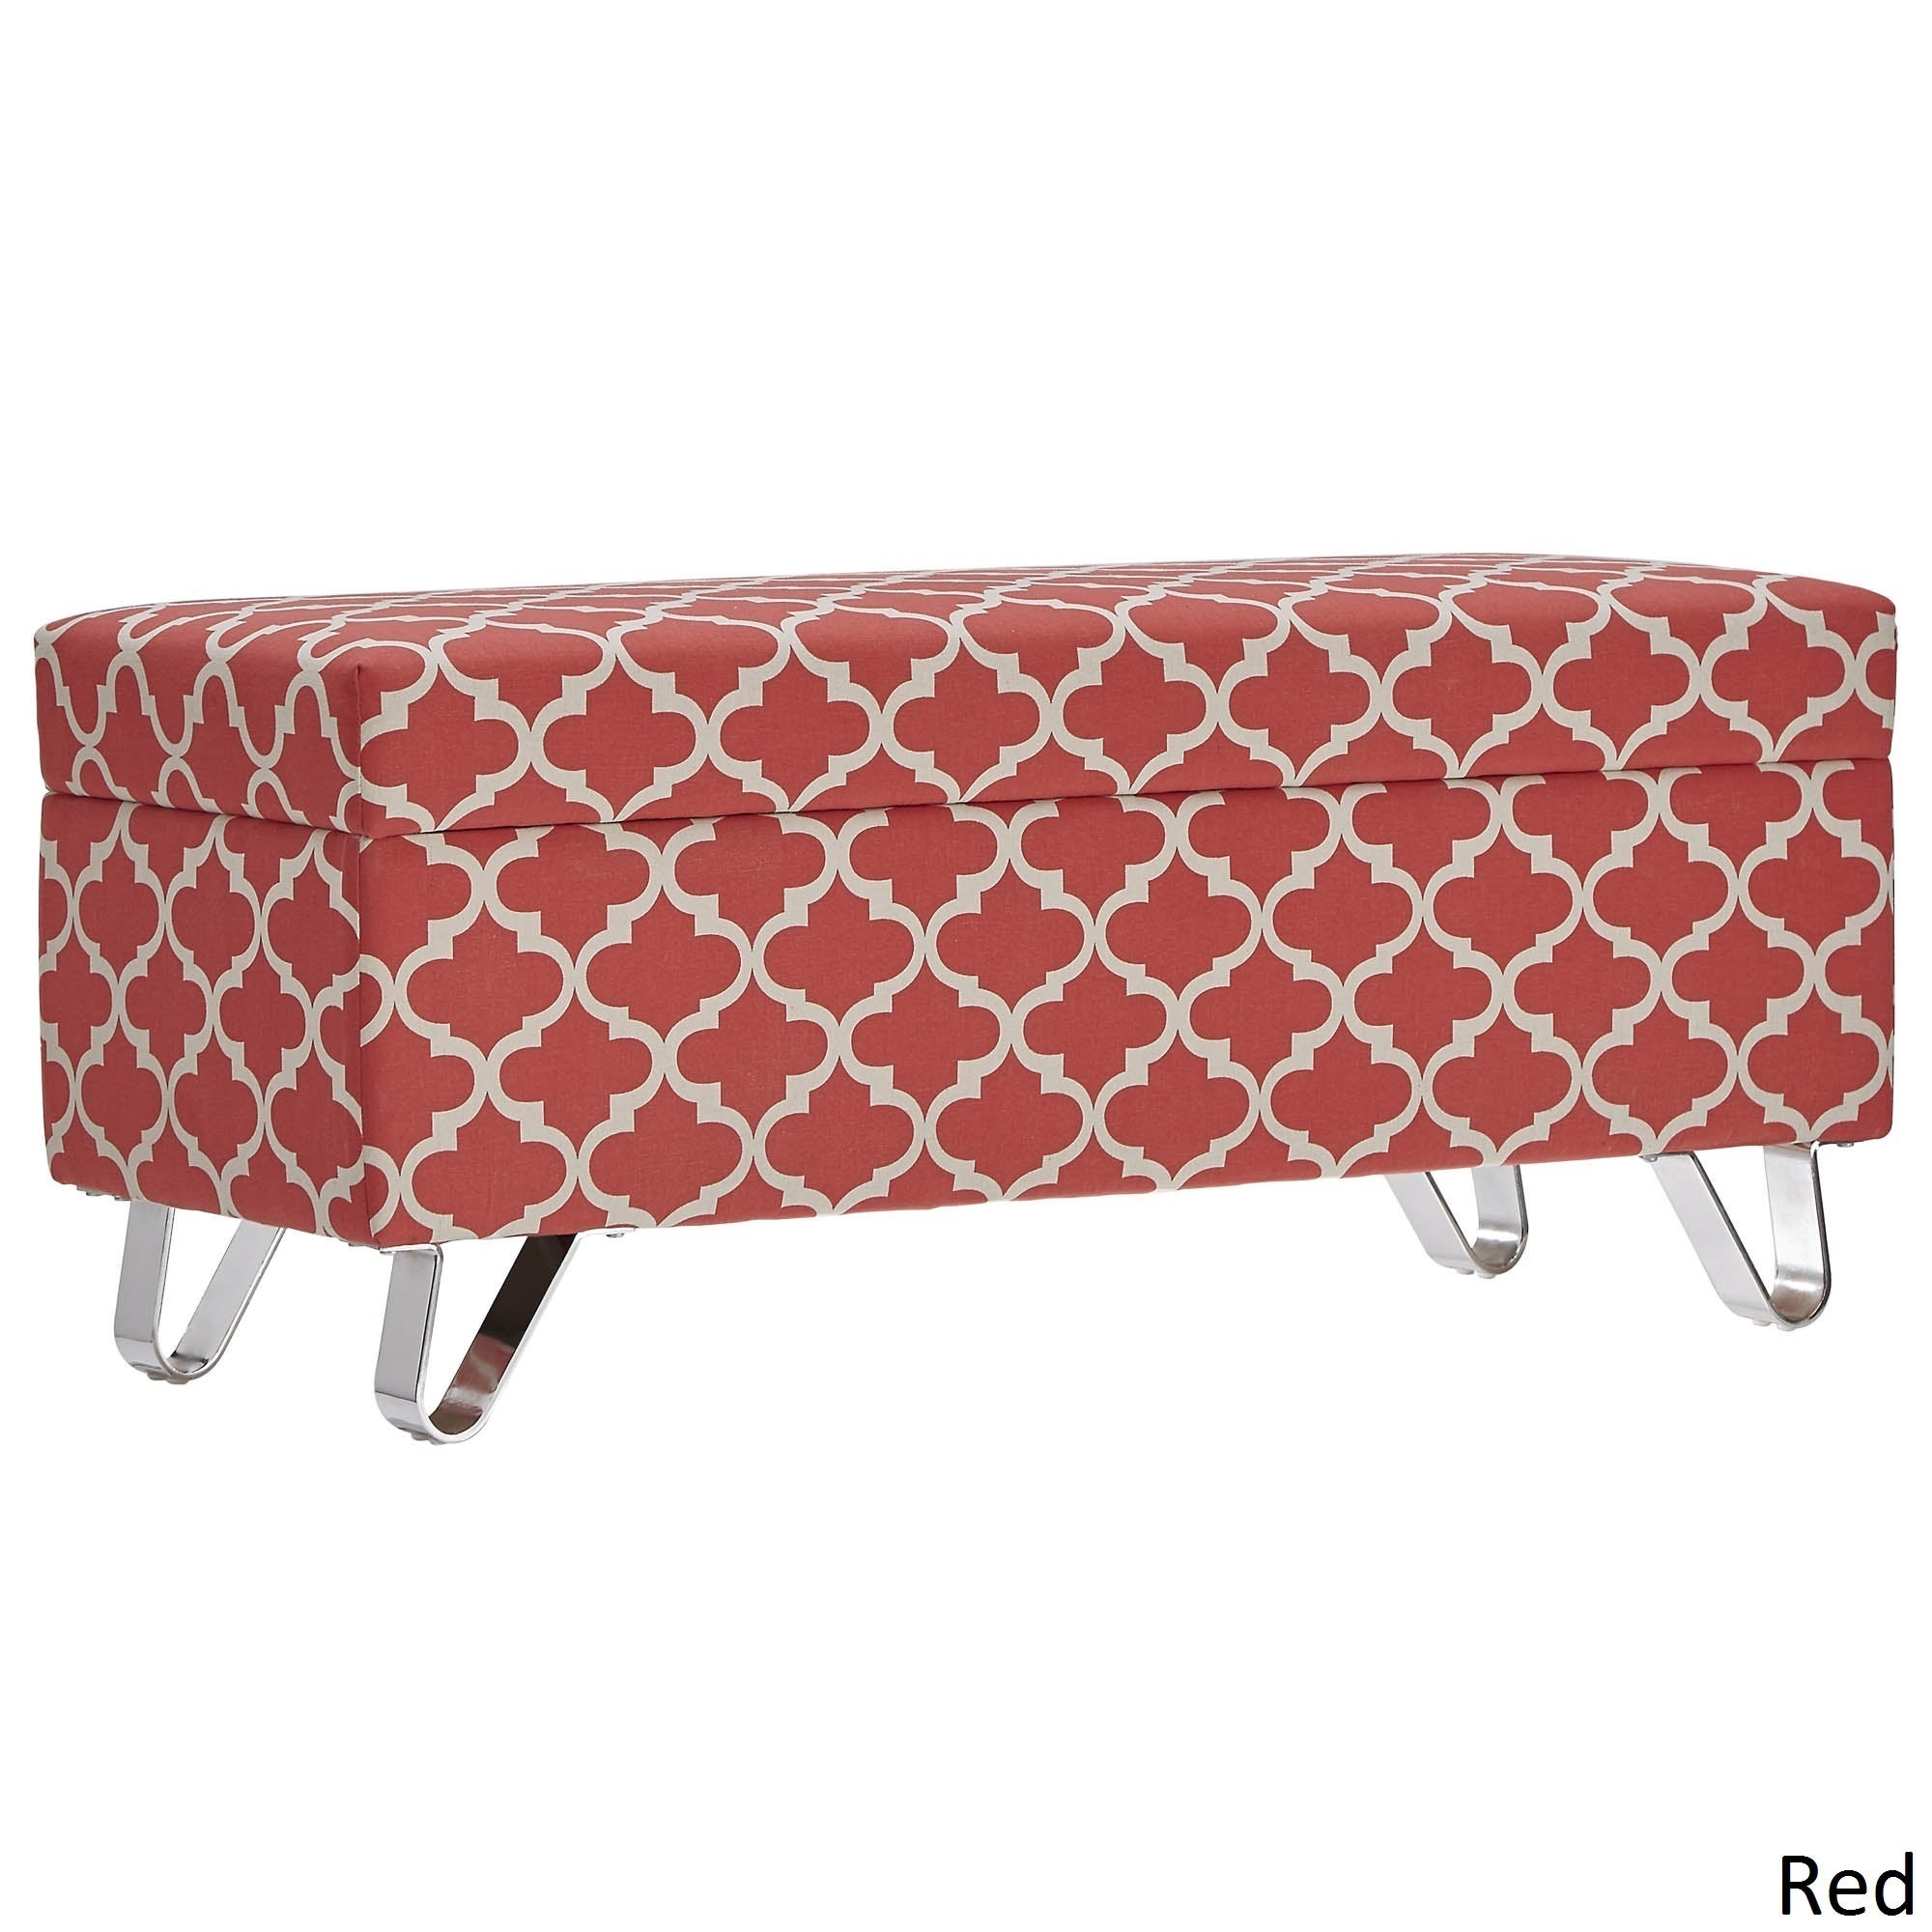 Tangier Moroccan Print Fabric Lift Top Storage Bench With Metal Legs By  INSPIRE Q Bold